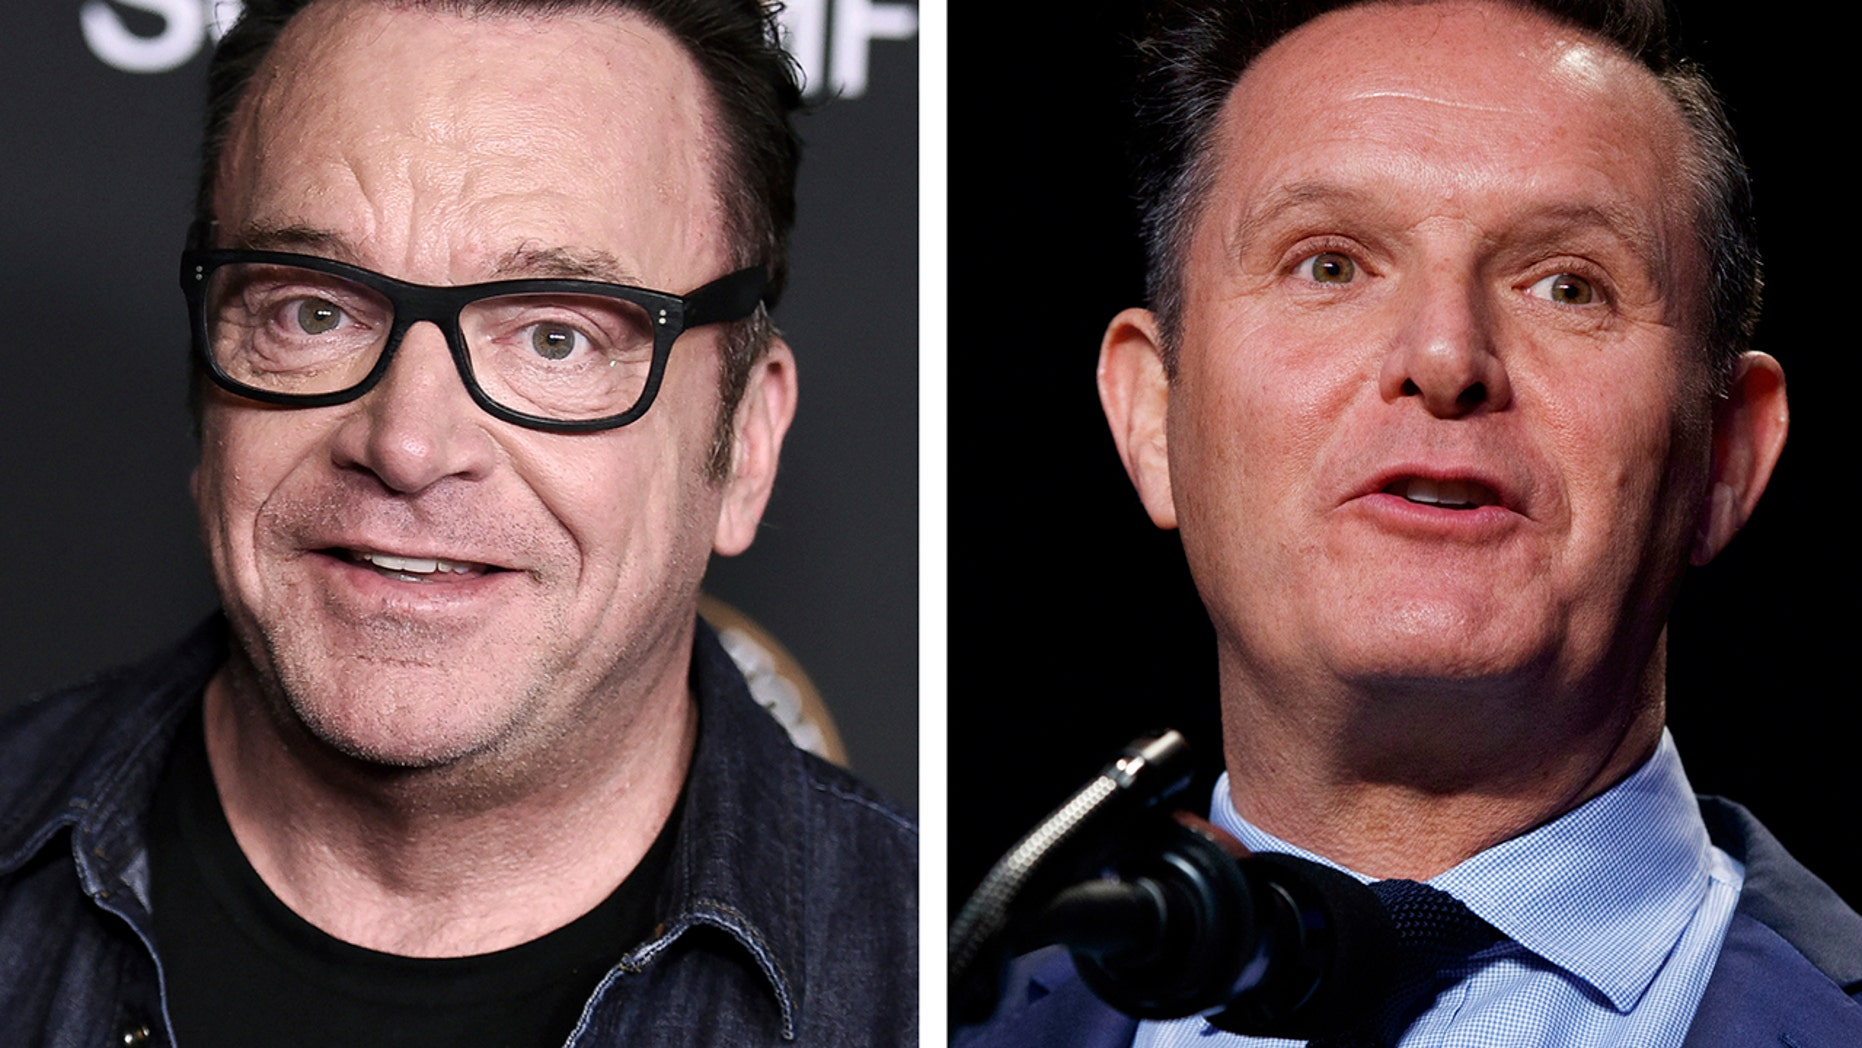 """Tom Arnold has worked on a series called """"The Hunt for Trump Tapes."""" He reportedly had some type of confrontation with producer Mark Burnett on Sunday night."""